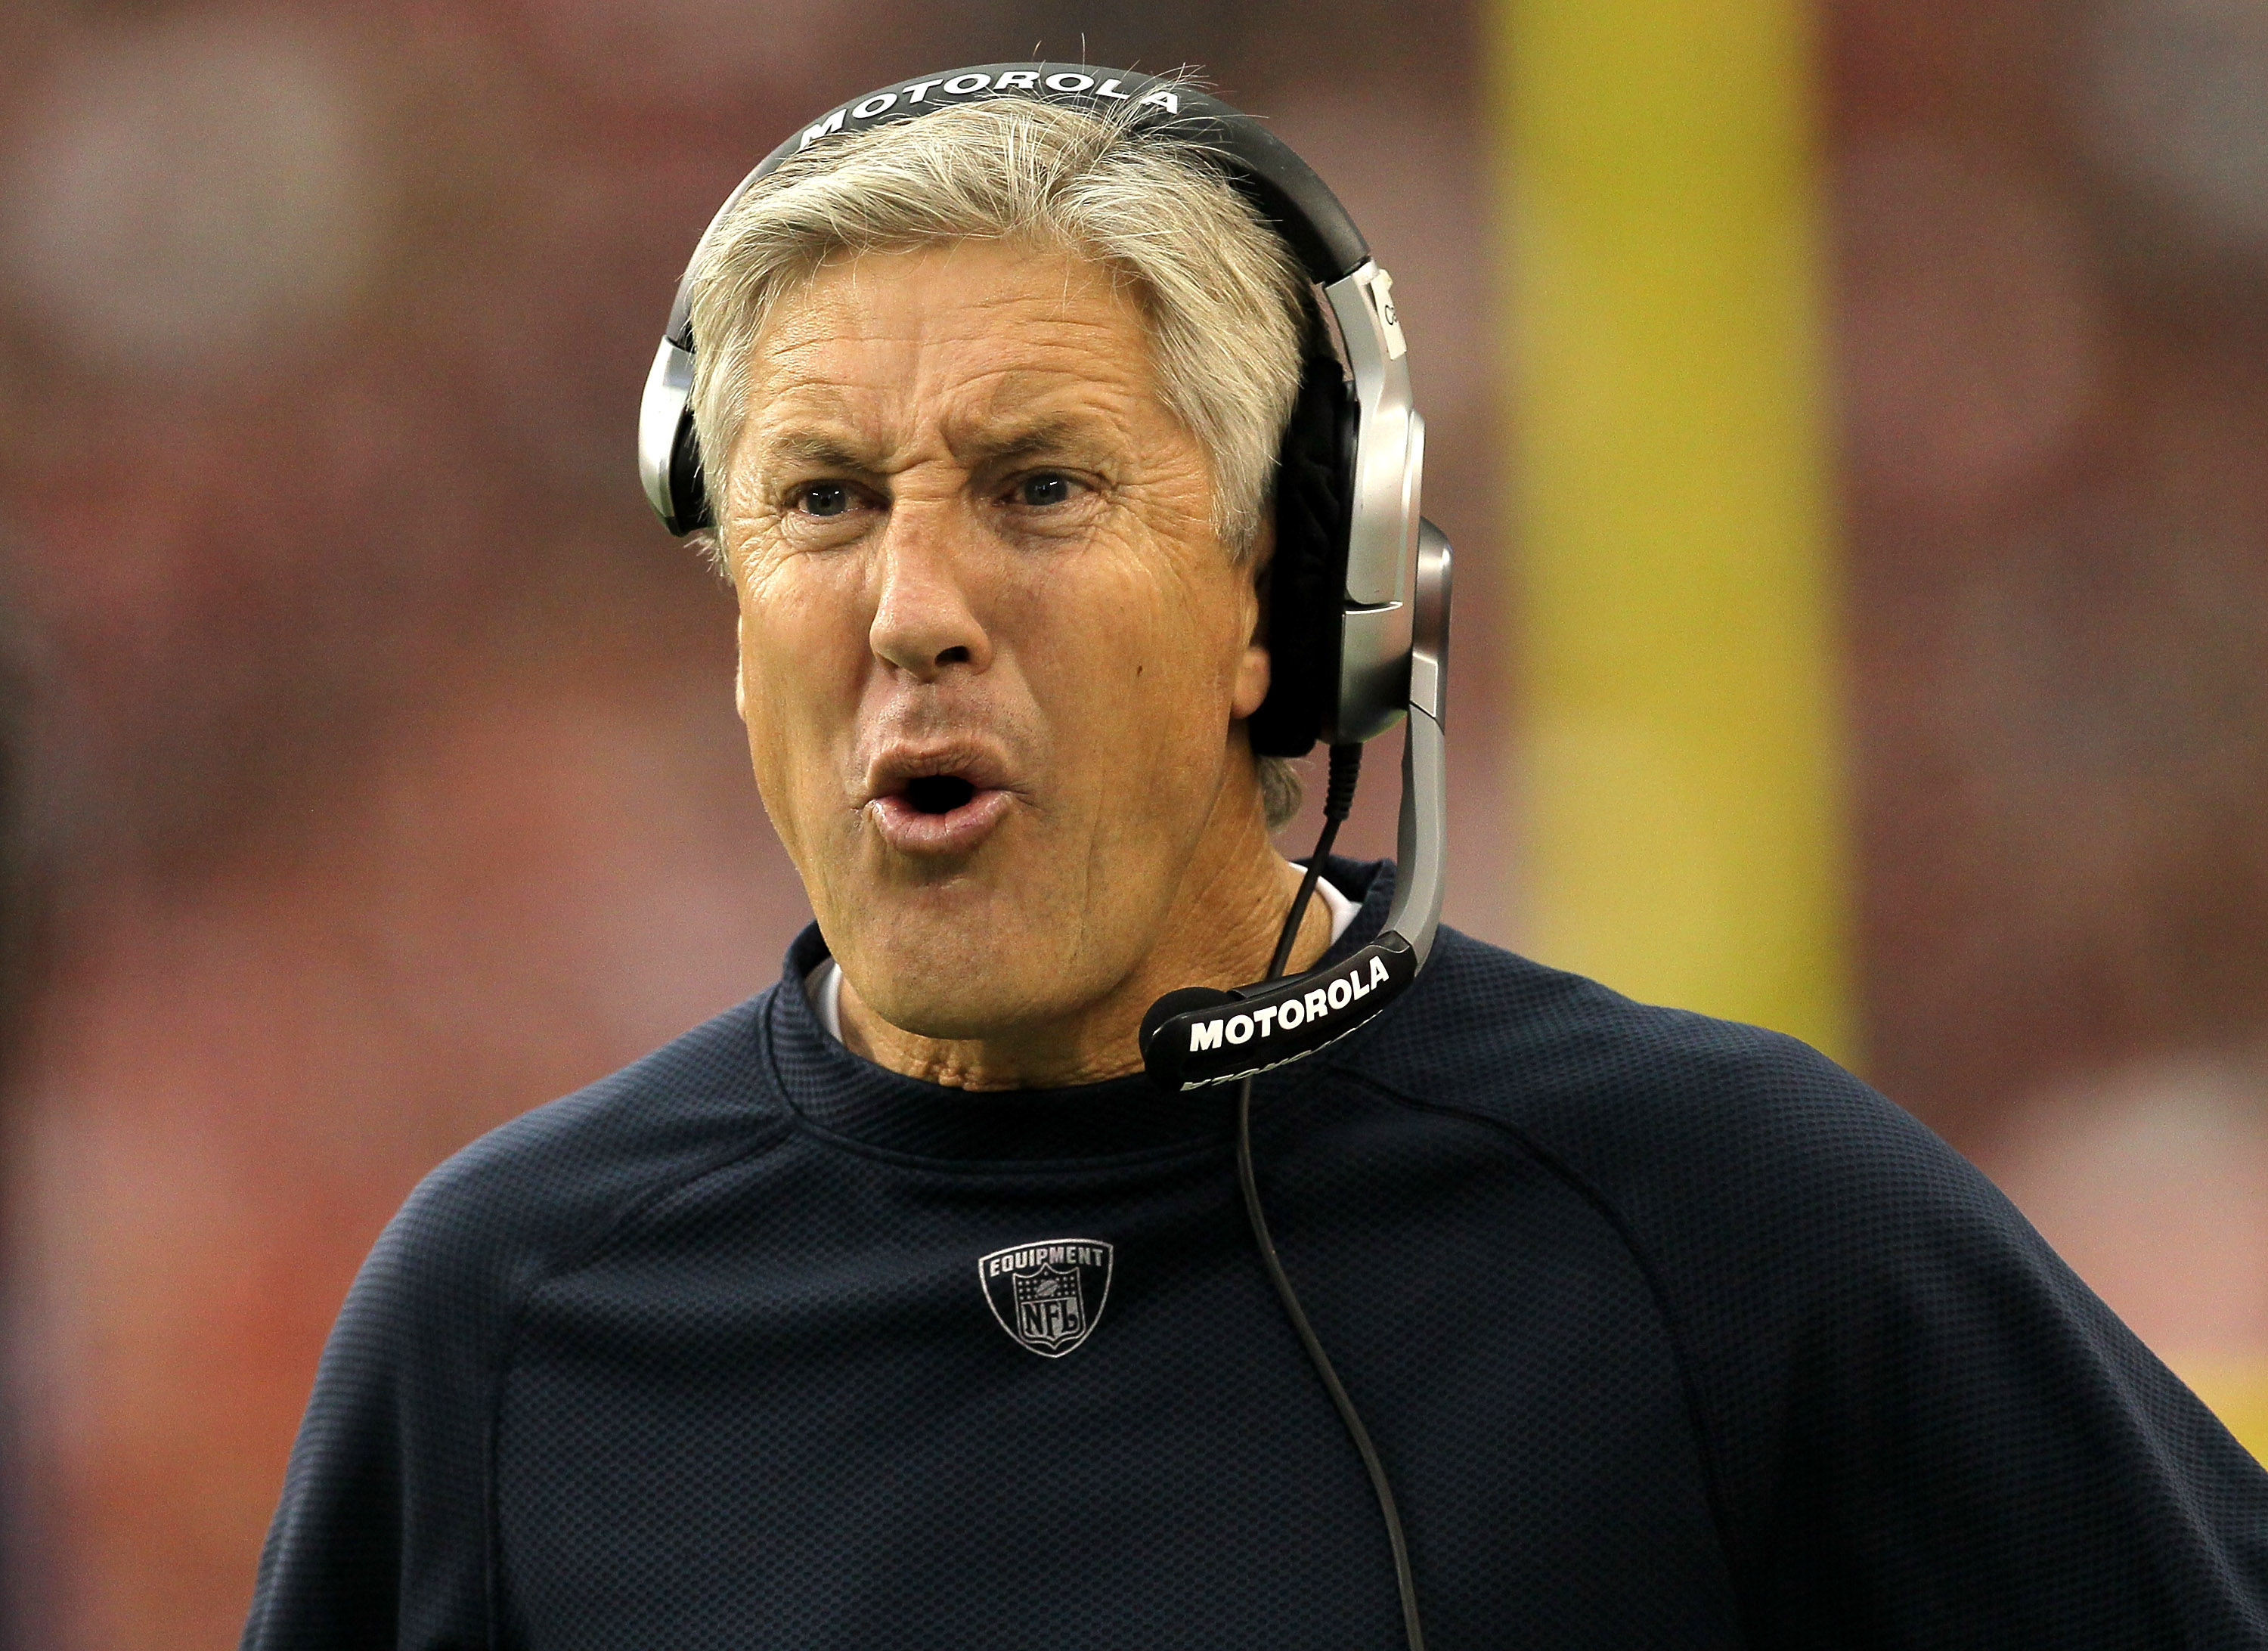 GLENDALE, AZ - NOVEMBER 14:  Head coach Pete Carroll of the Seattle Seahawks complains to a referee during the game with the Arizona Cardinals at University of Phoenix Stadium on November 14, 2010 in Glendale, Arizona.  Seattle won 36-18. (Photo by Stephe